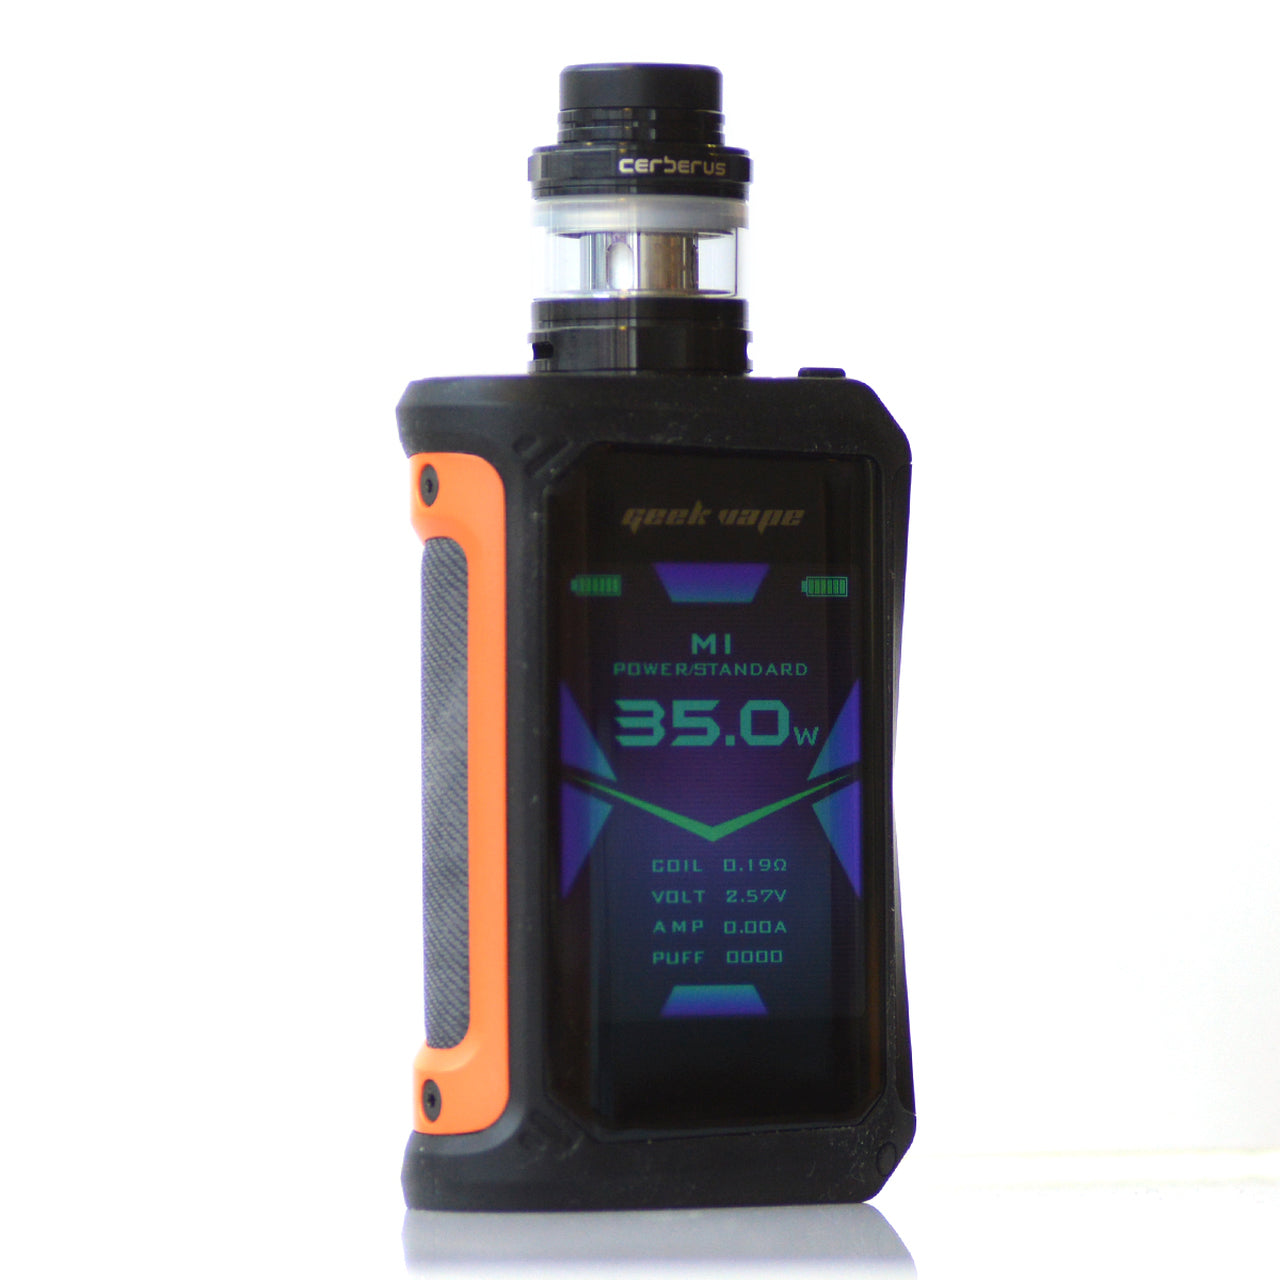 Aegis X Kit by Geek Vape